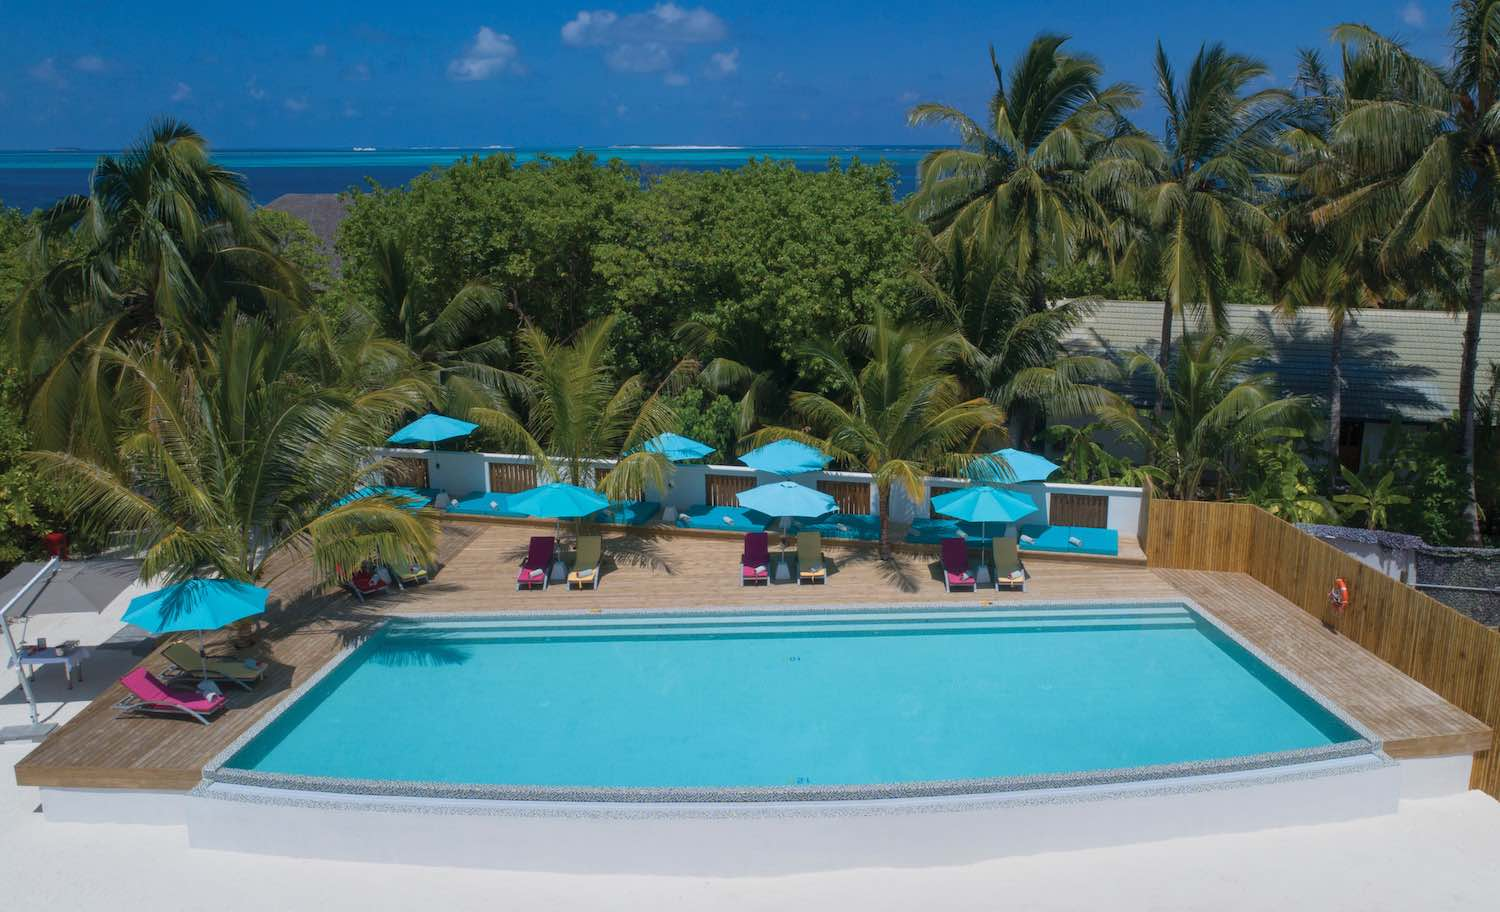 maldives-oblu-by-atmosphere-at-helengeli-adult-only-pool-8-holiday-honeymoon-vacation-invite-to-paradise.jpg